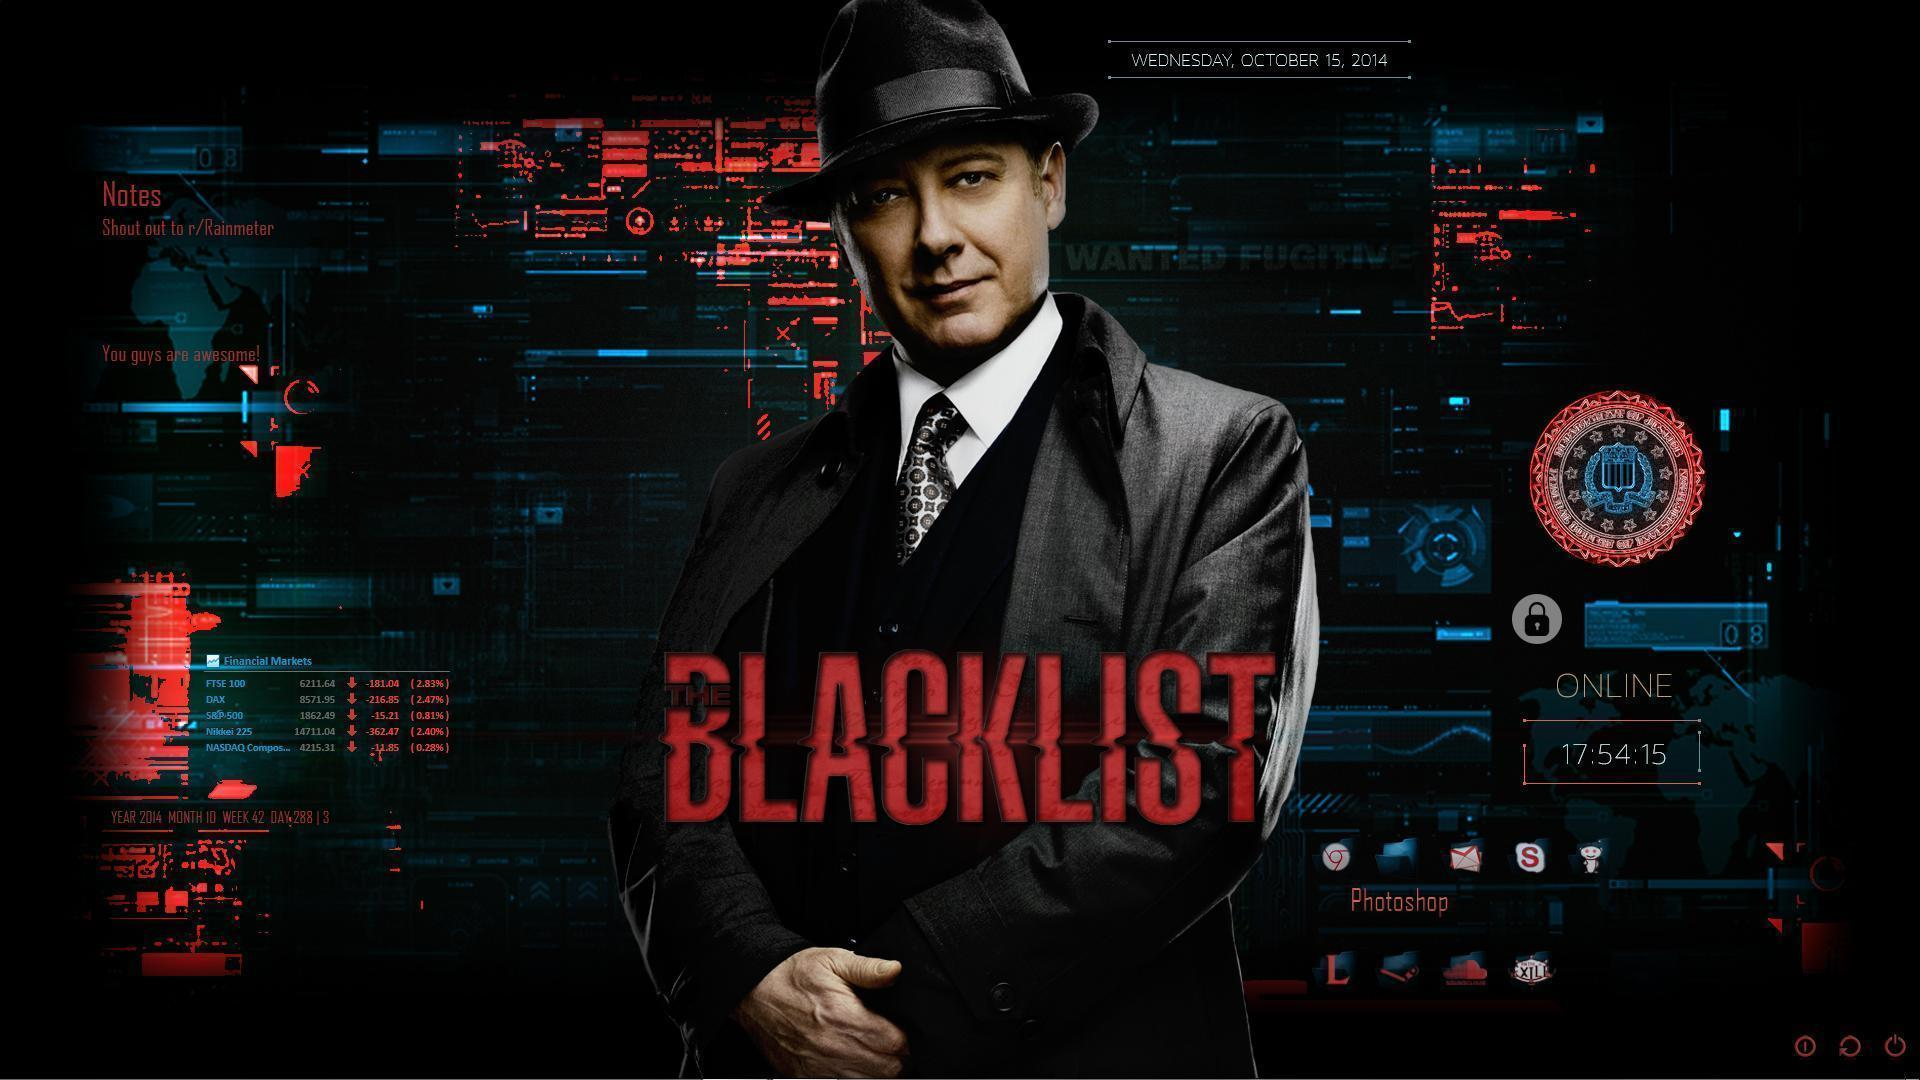 The Blacklist Teams Background